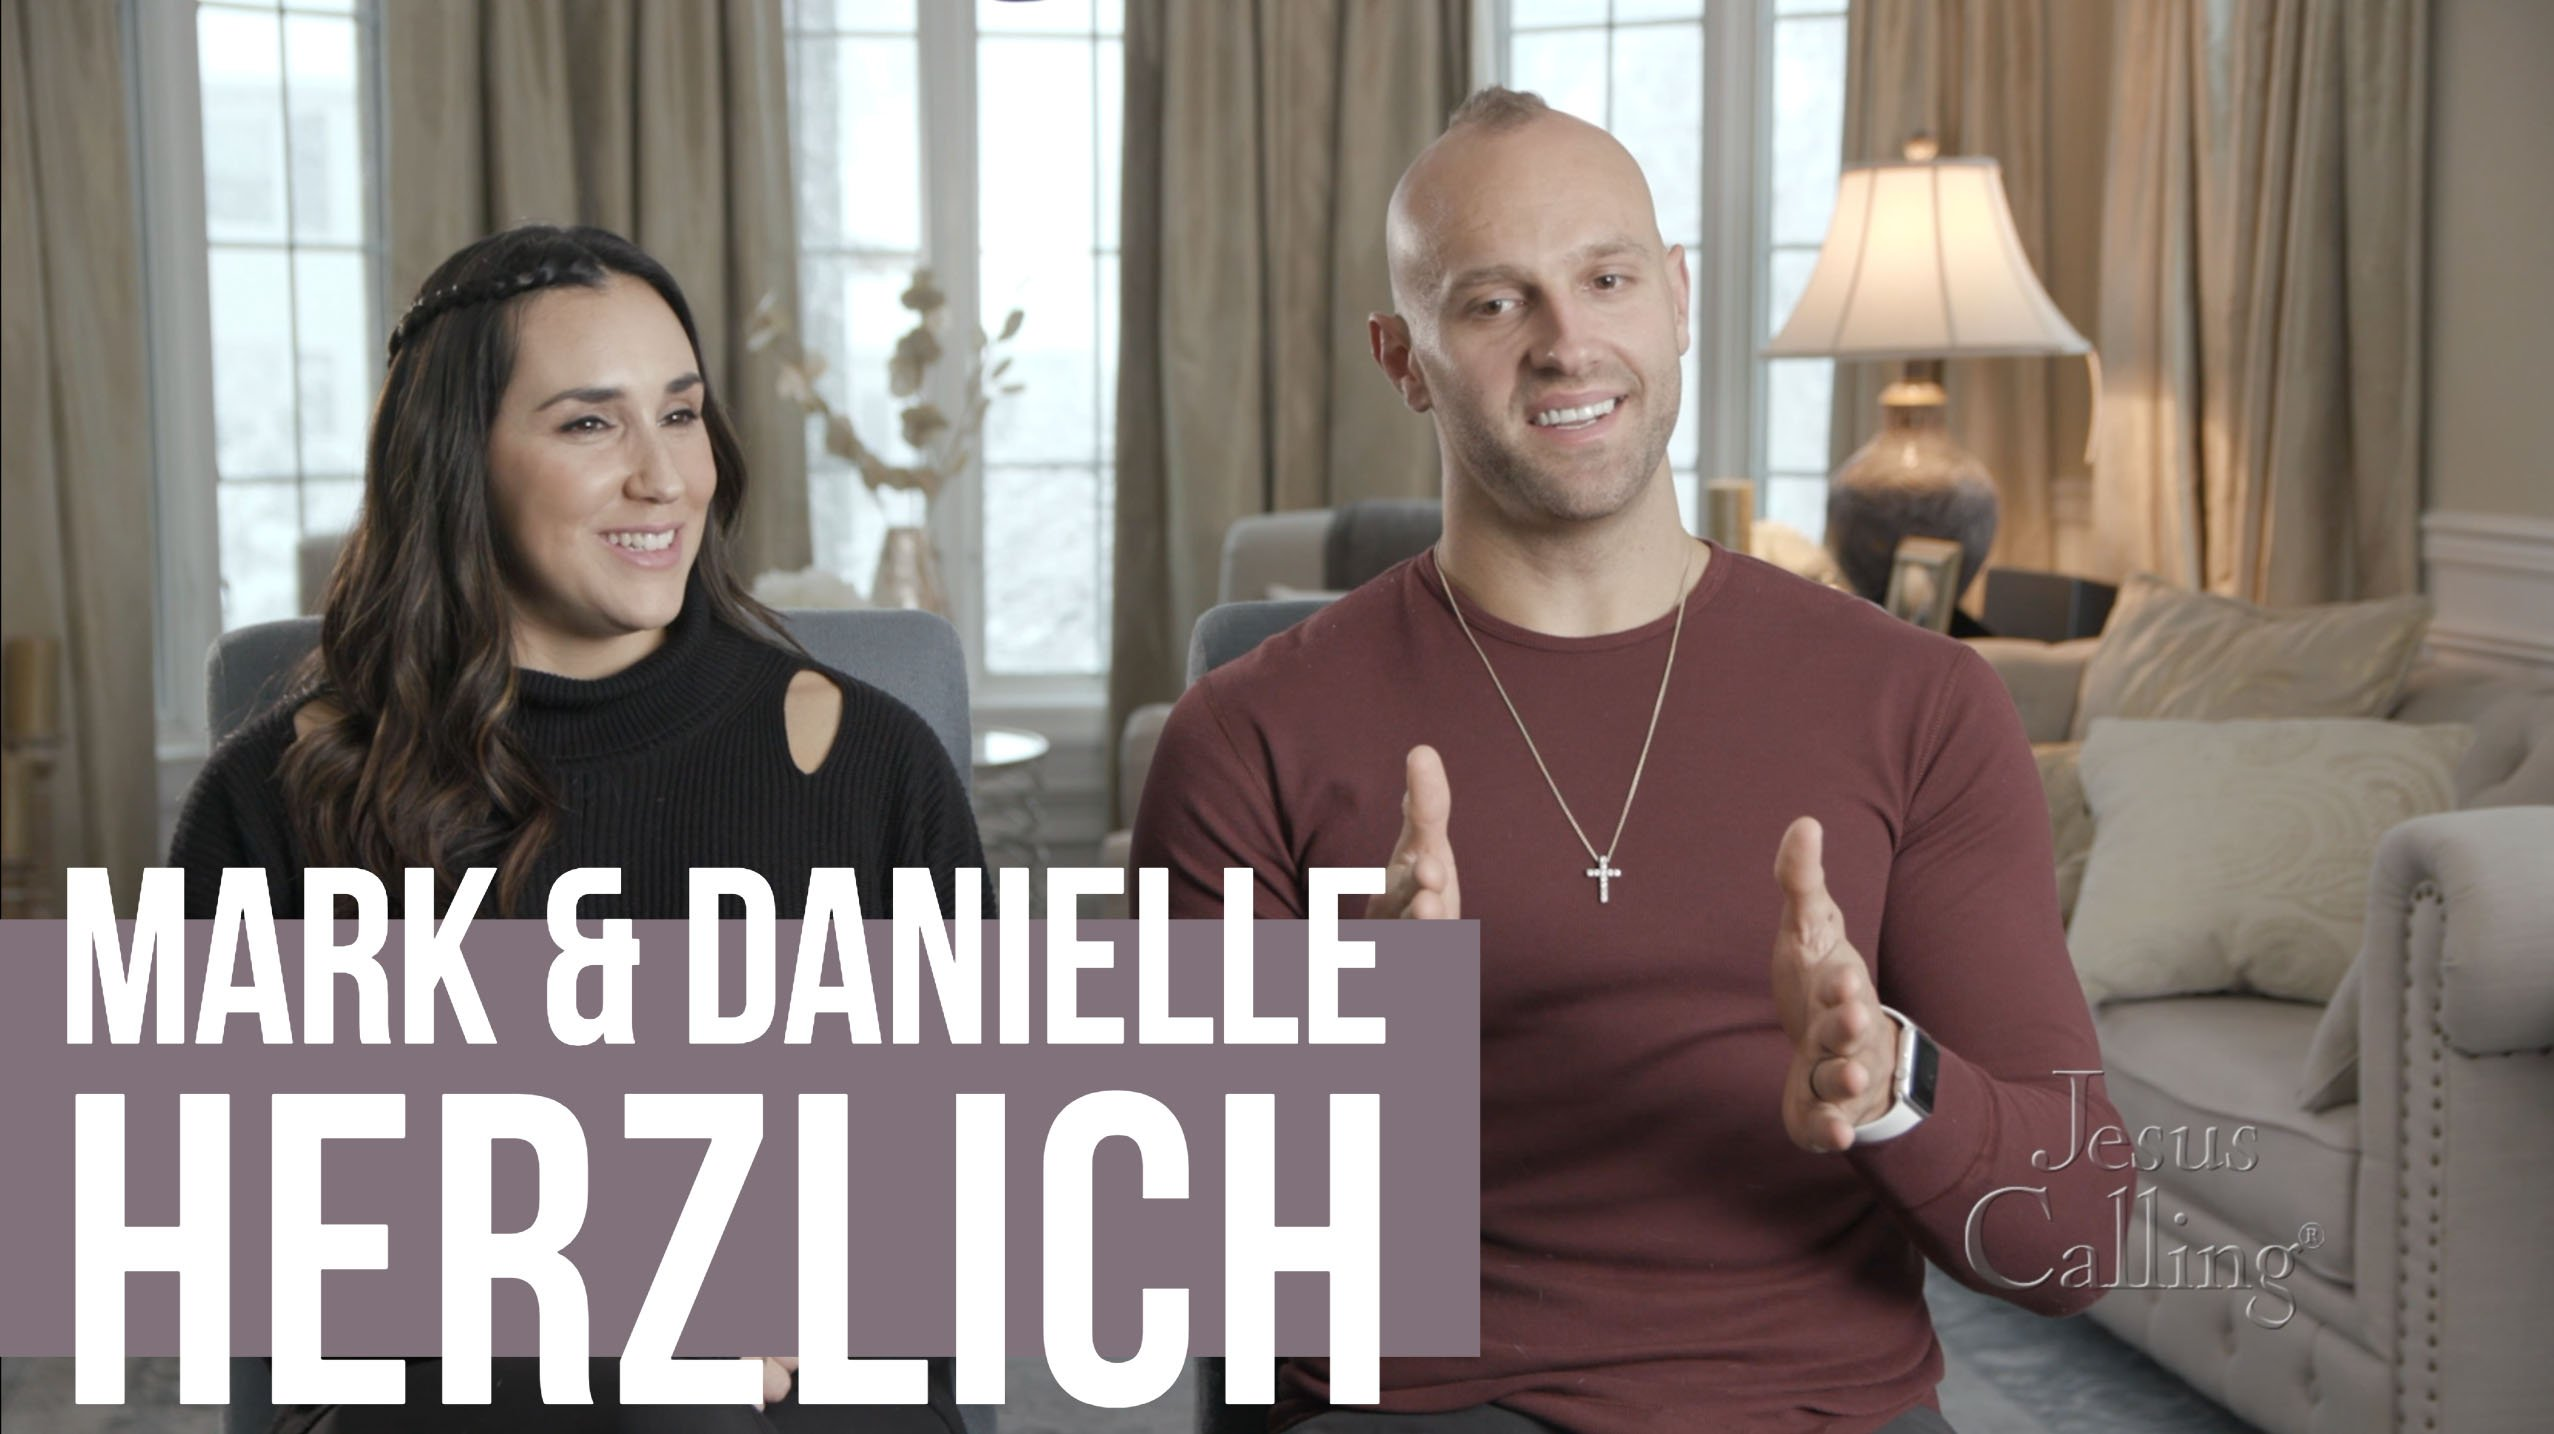 Mark And Danielle Herzlich; Given Courage To Use Your Voice